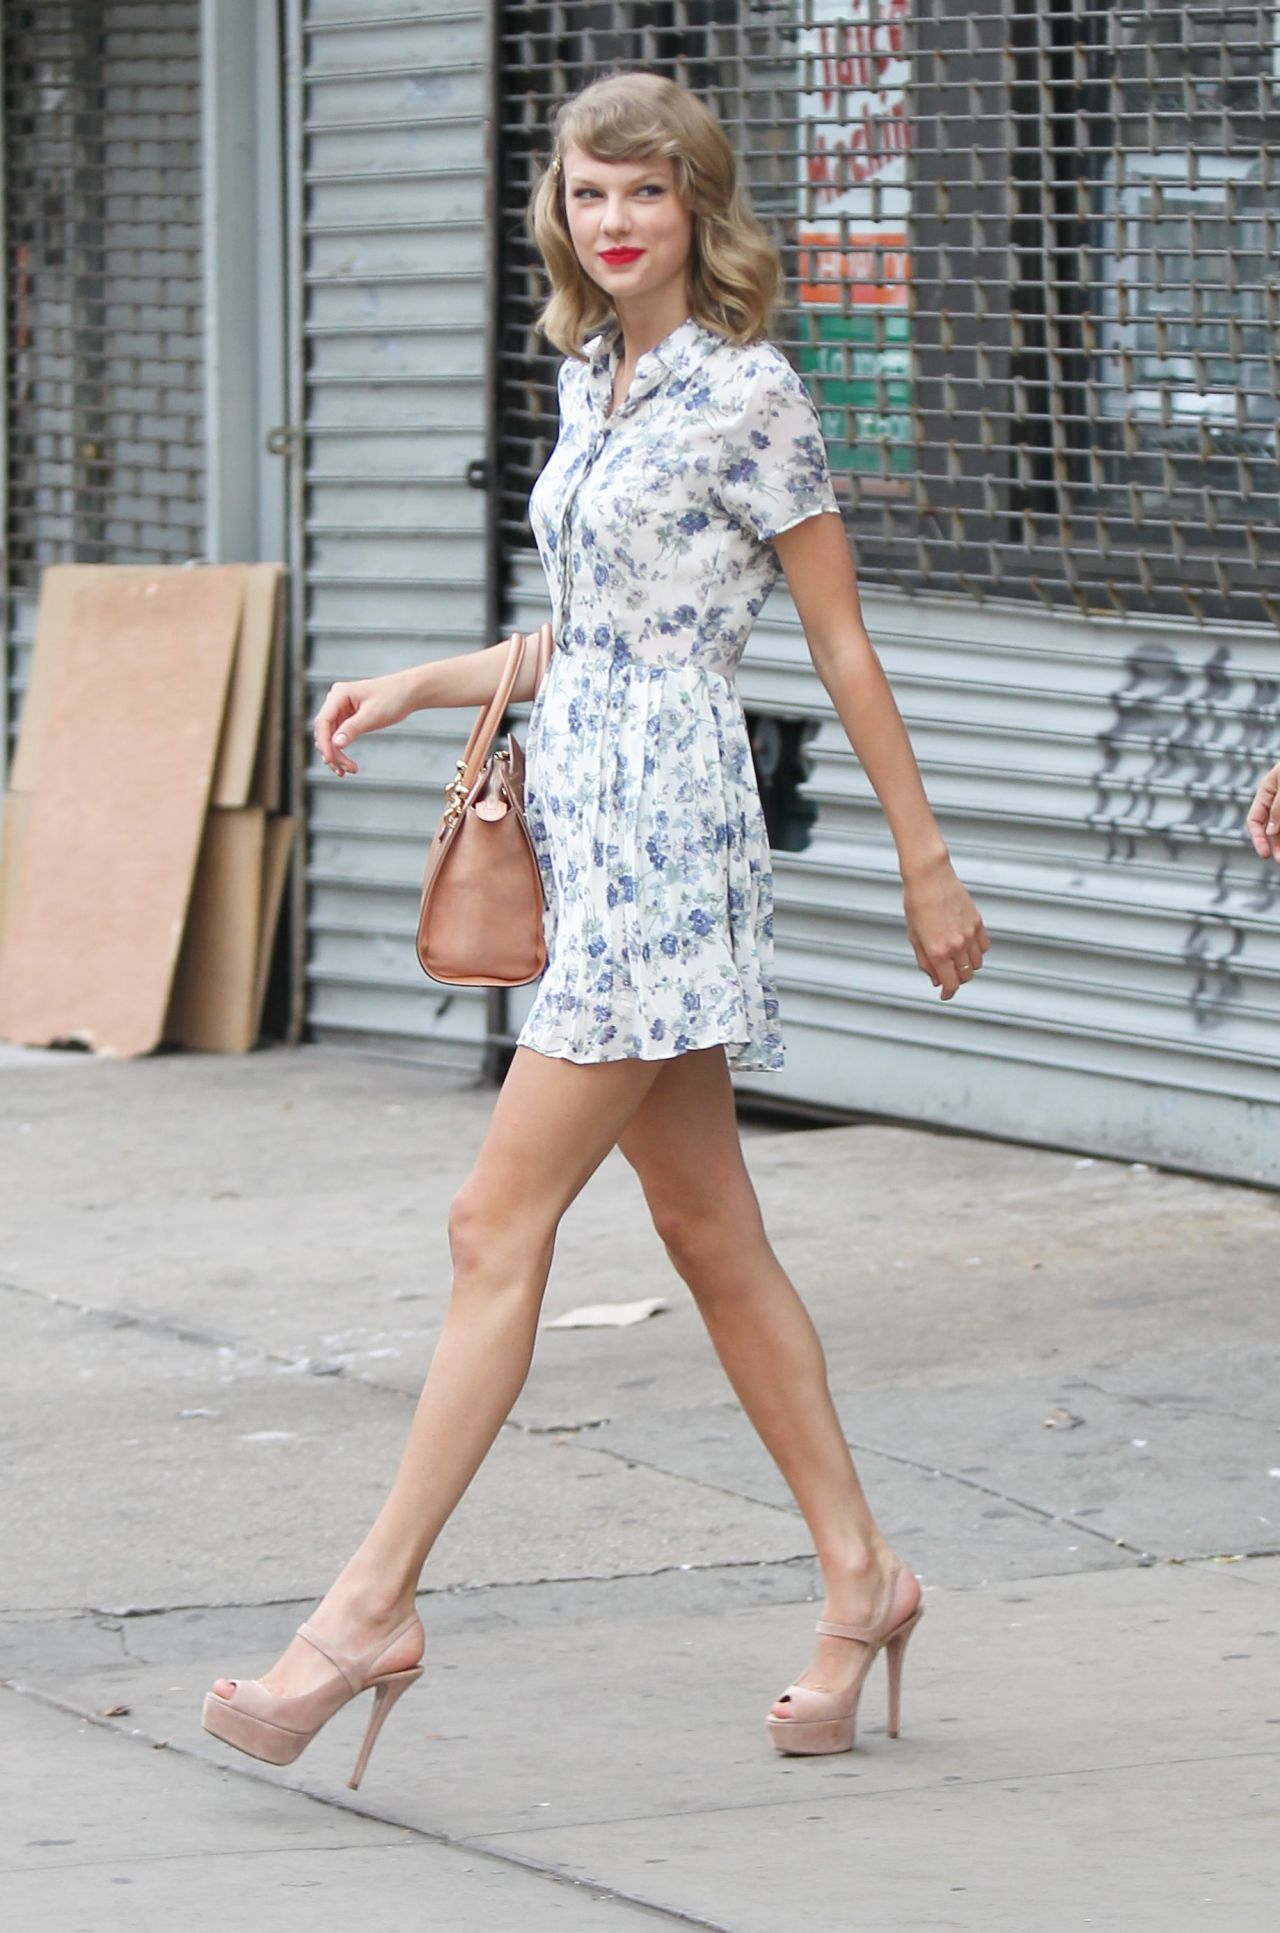 Taylor Swift Leggy - Leaving a Gym in New York City - July 2014